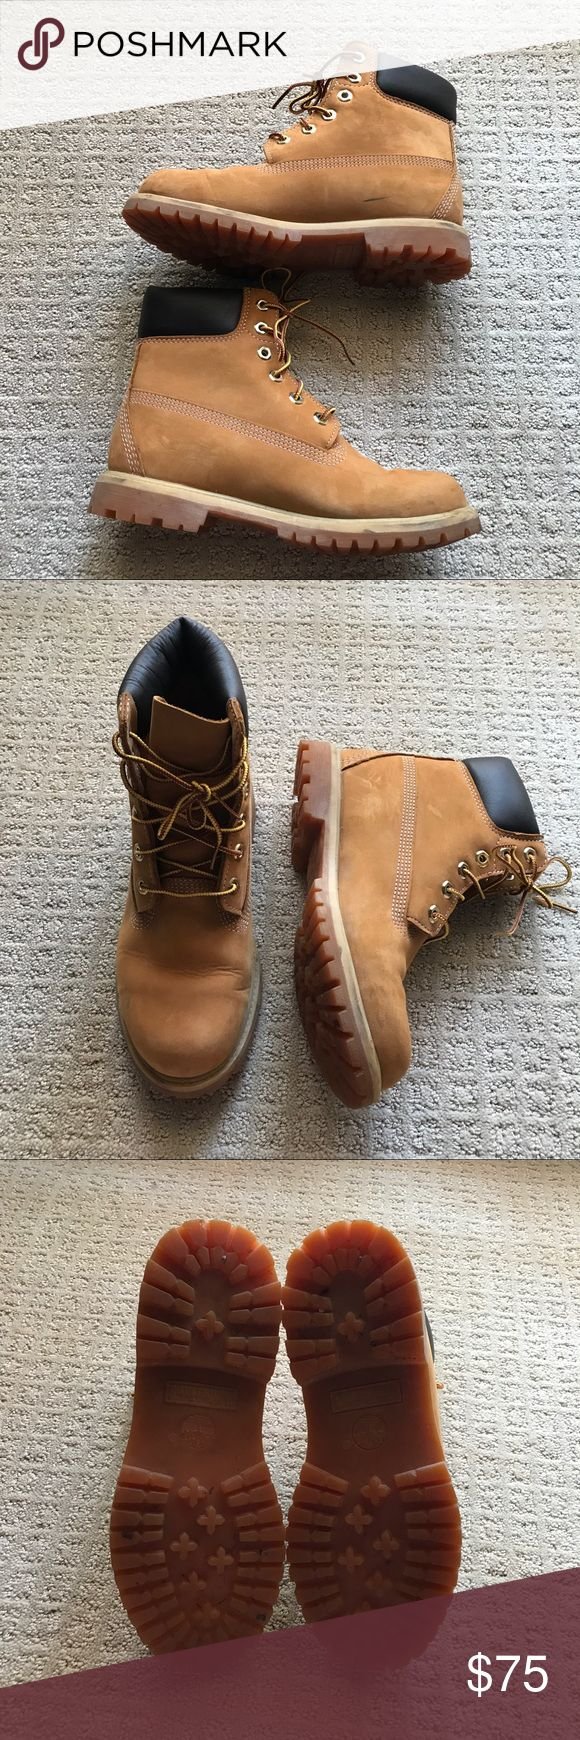 Women's Timberland Boots Very gently used women's Timberlands, 100% authentic, no trades and price is firm. Minor ware, black mark pictured but probably can be washed off. Timberland Shoes Winter & Rain Boots